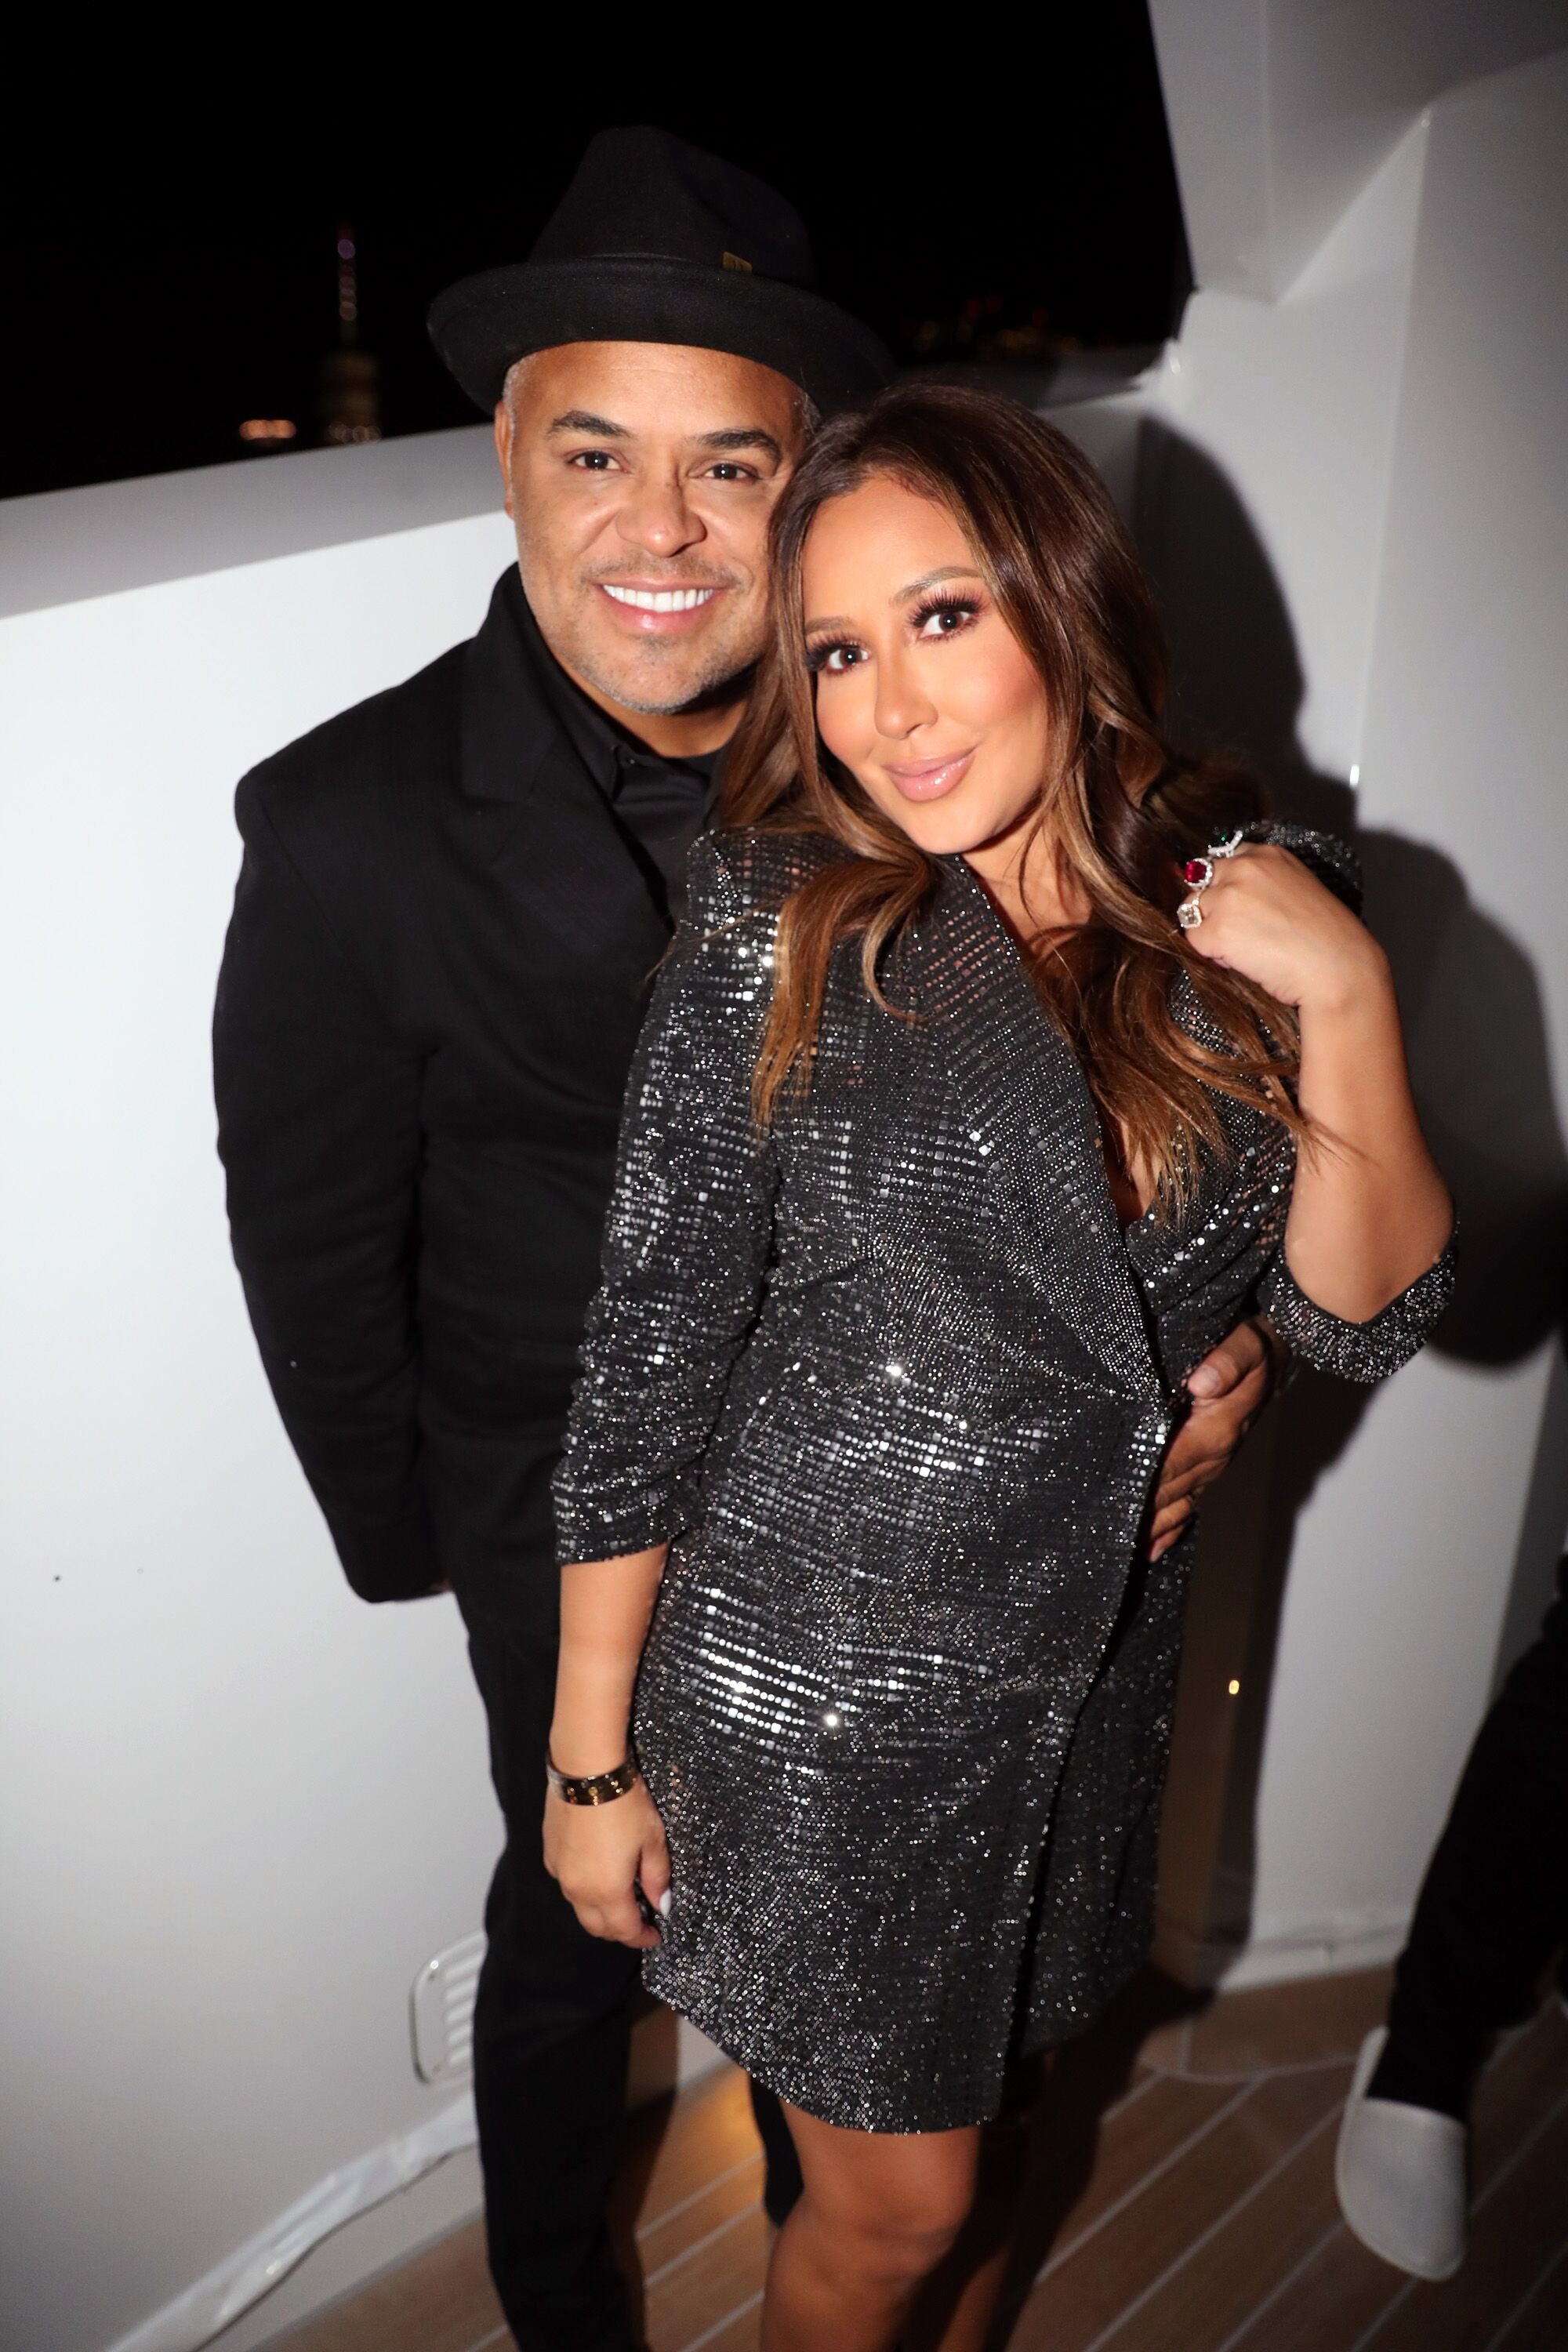 Israel Houghton (L) and Adrienne Bailon attend the Lumiere De Vie Hommes Launch Event. | Source: Getty Images